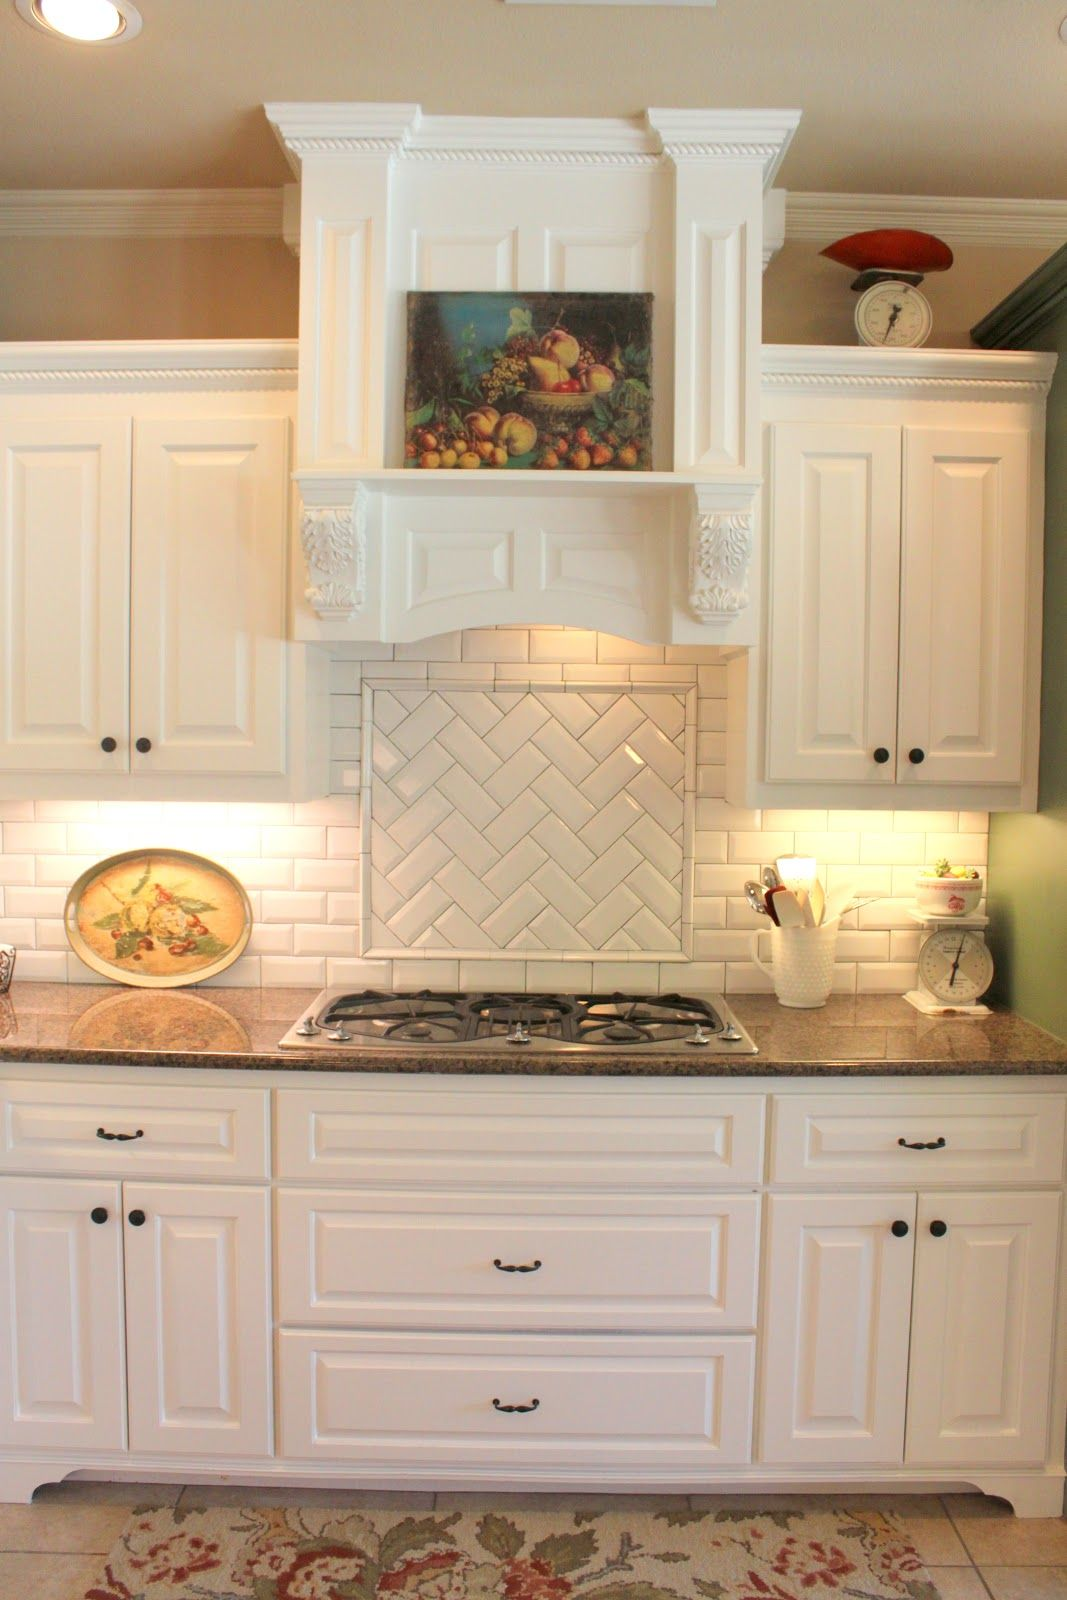 Subway or morrocan tile backsplash with white cabinets for Subway tile designs